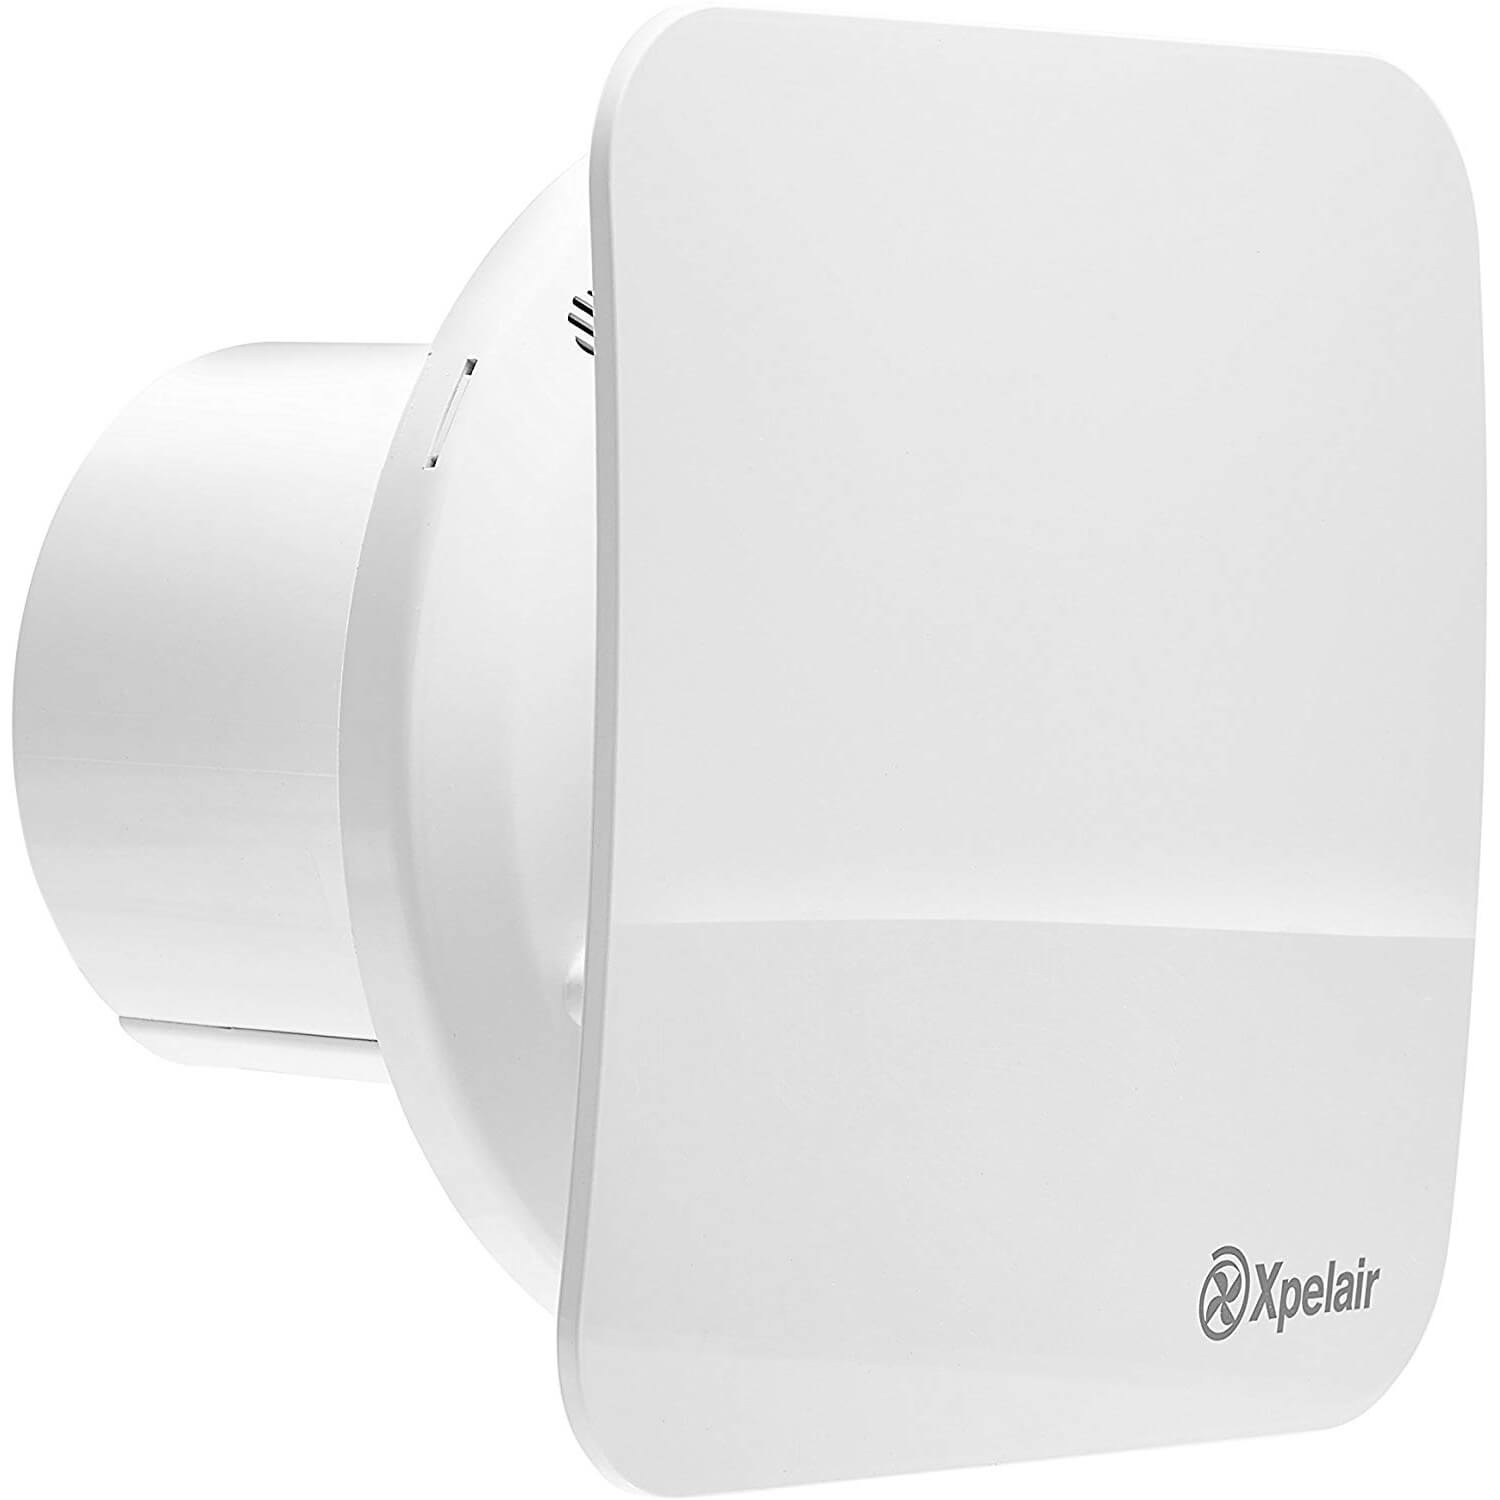 Xpelair C4S 4-inch Simply Silent Contour Extractor Fan